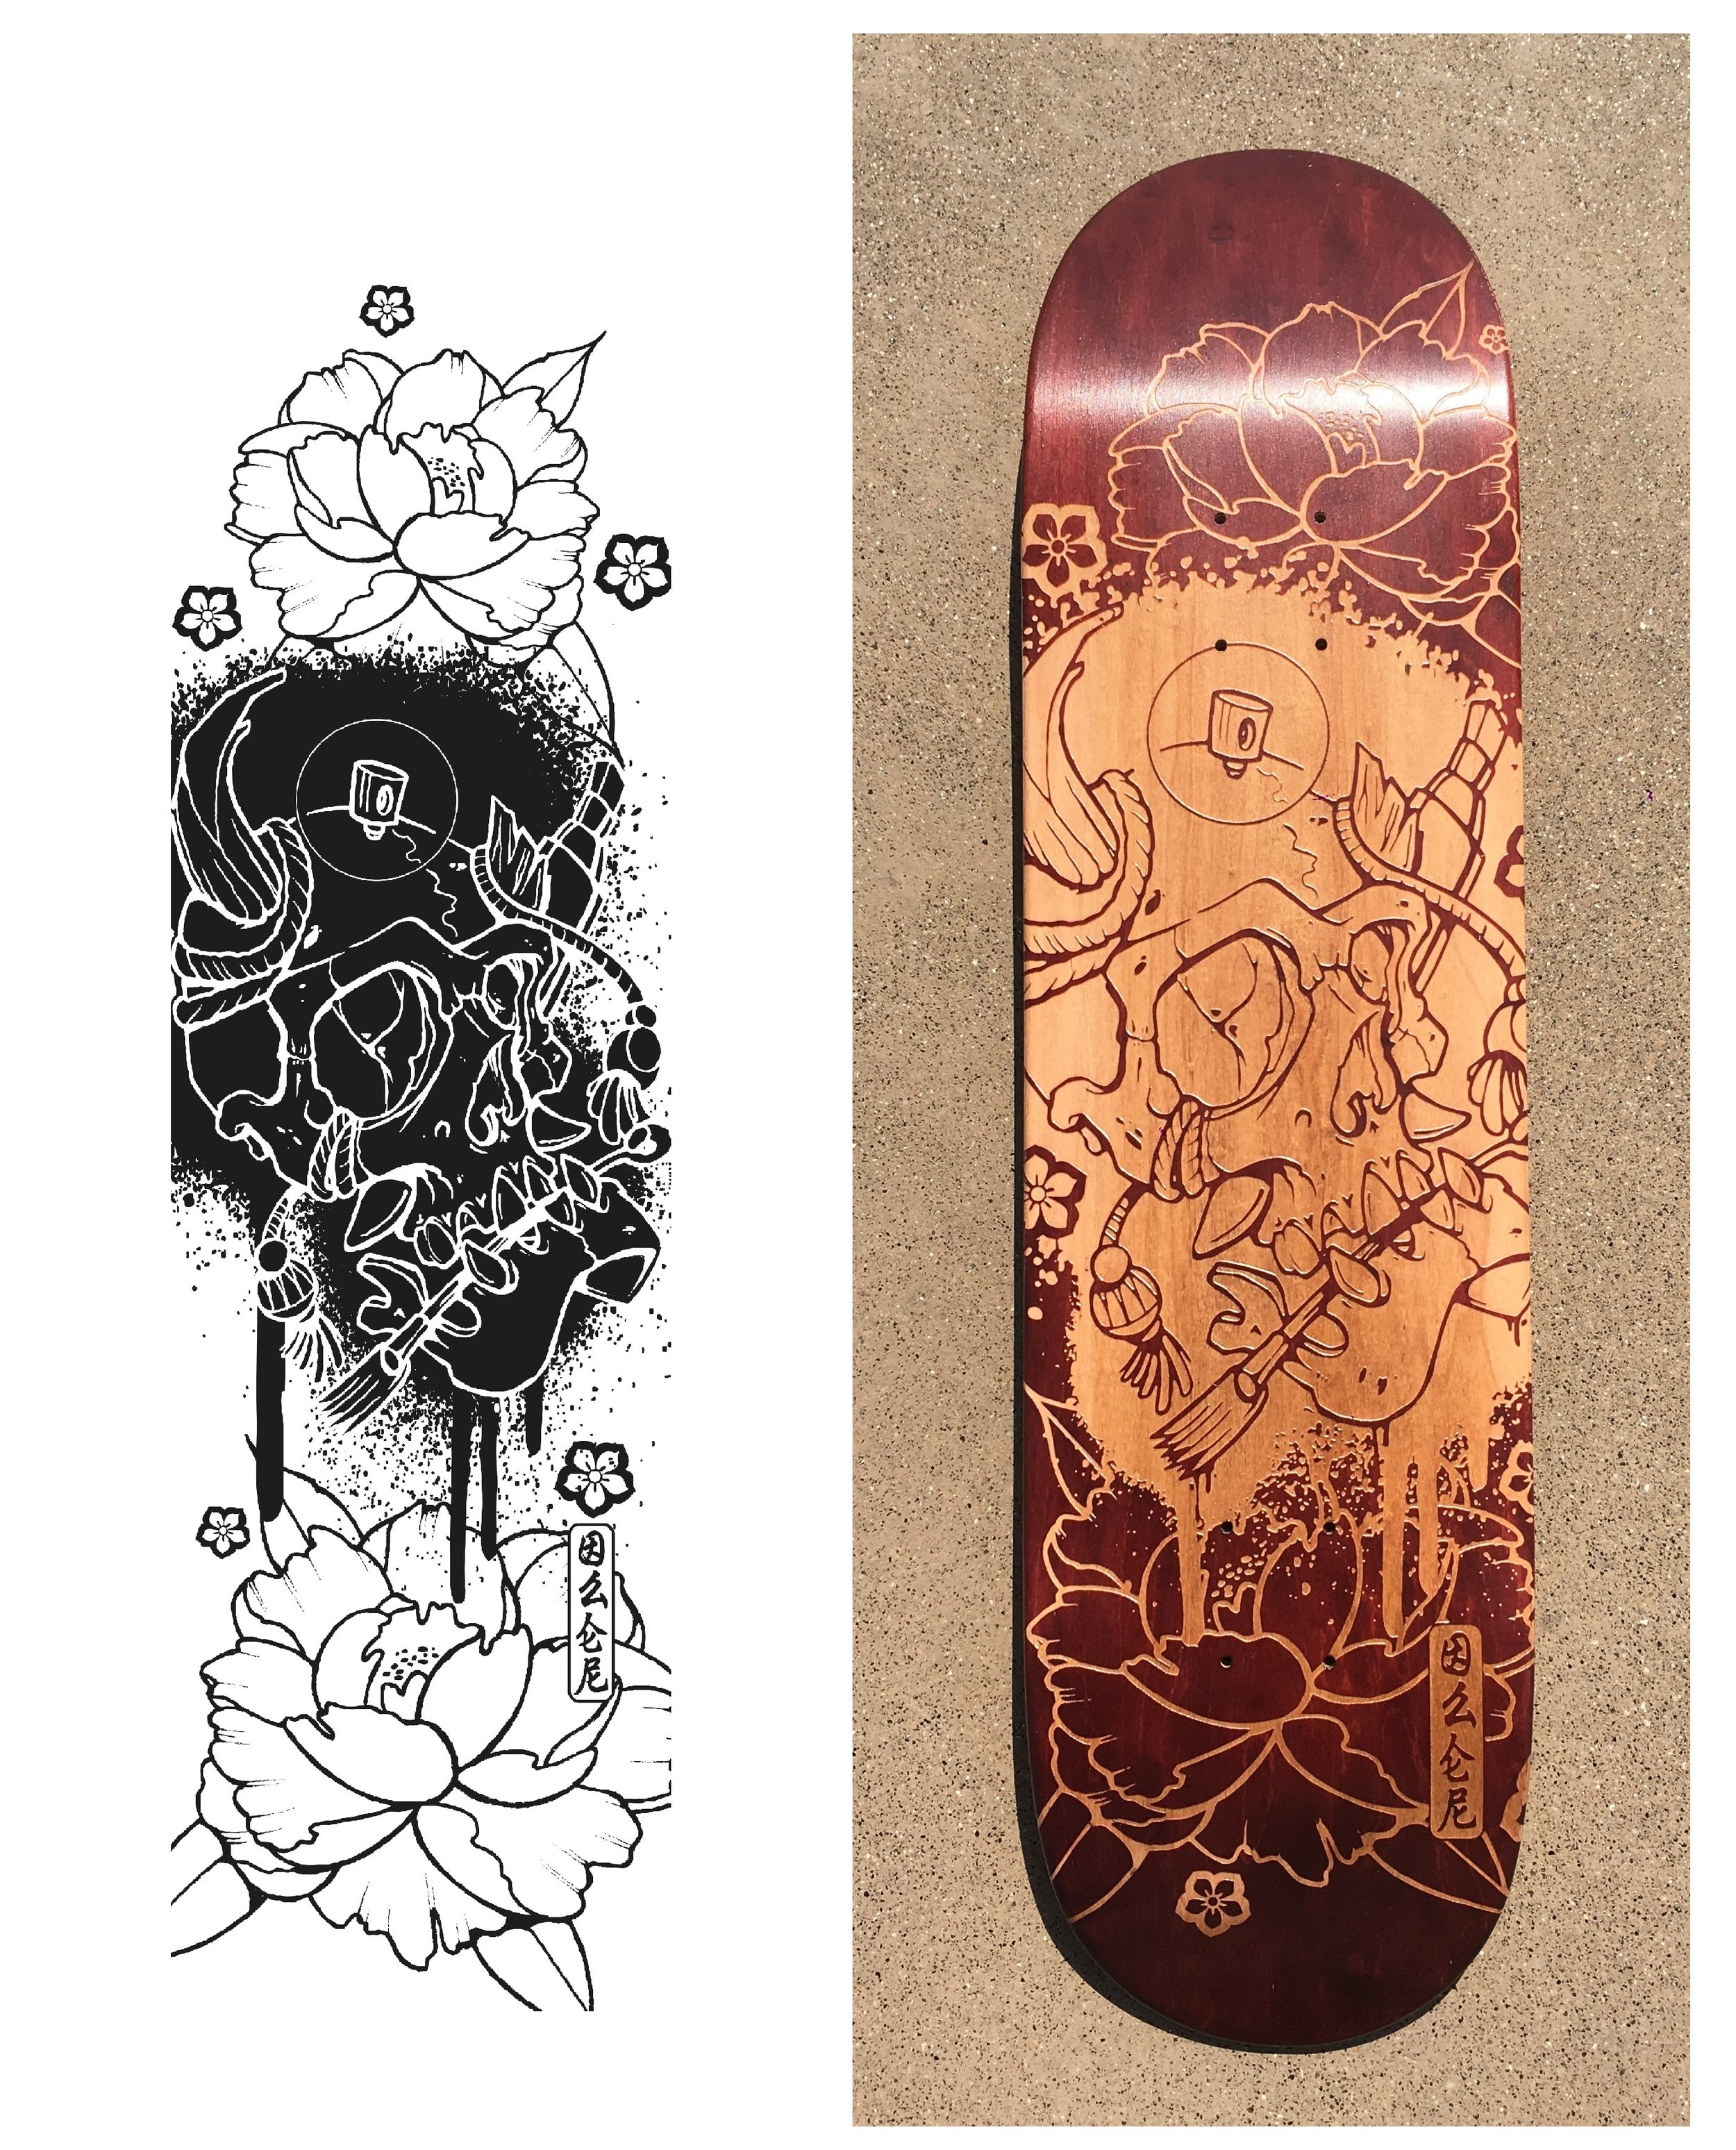 The original file from Illustrator and the result of the engraving on the skateboard deck